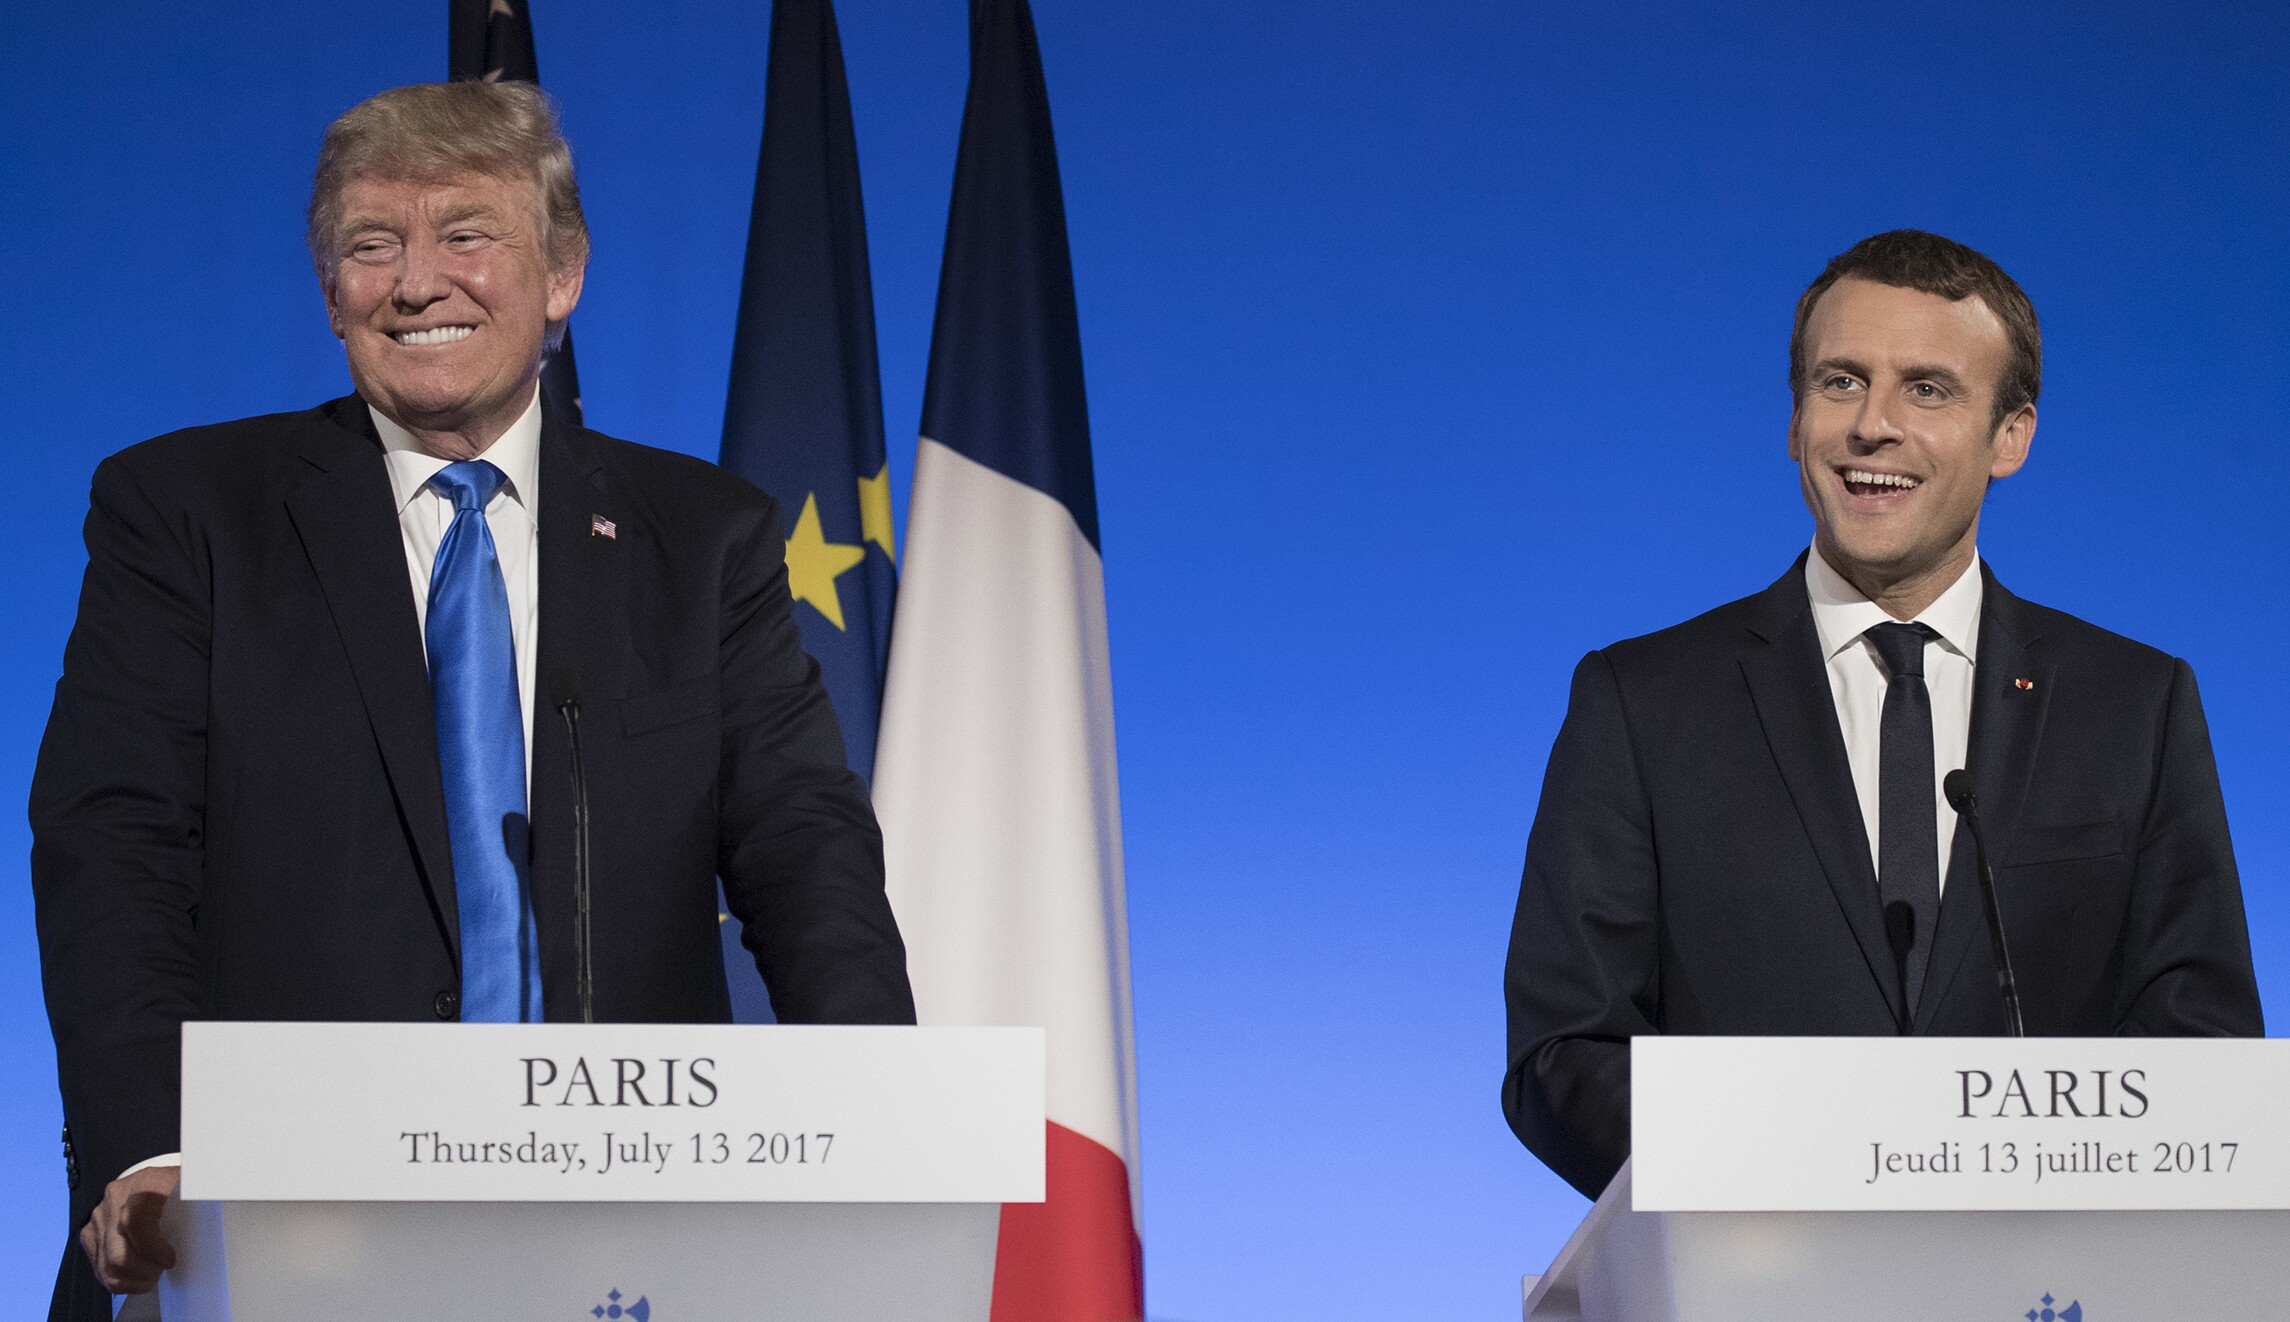 Thank Trump And Emmanuel Macron For Increased French Defense Spending